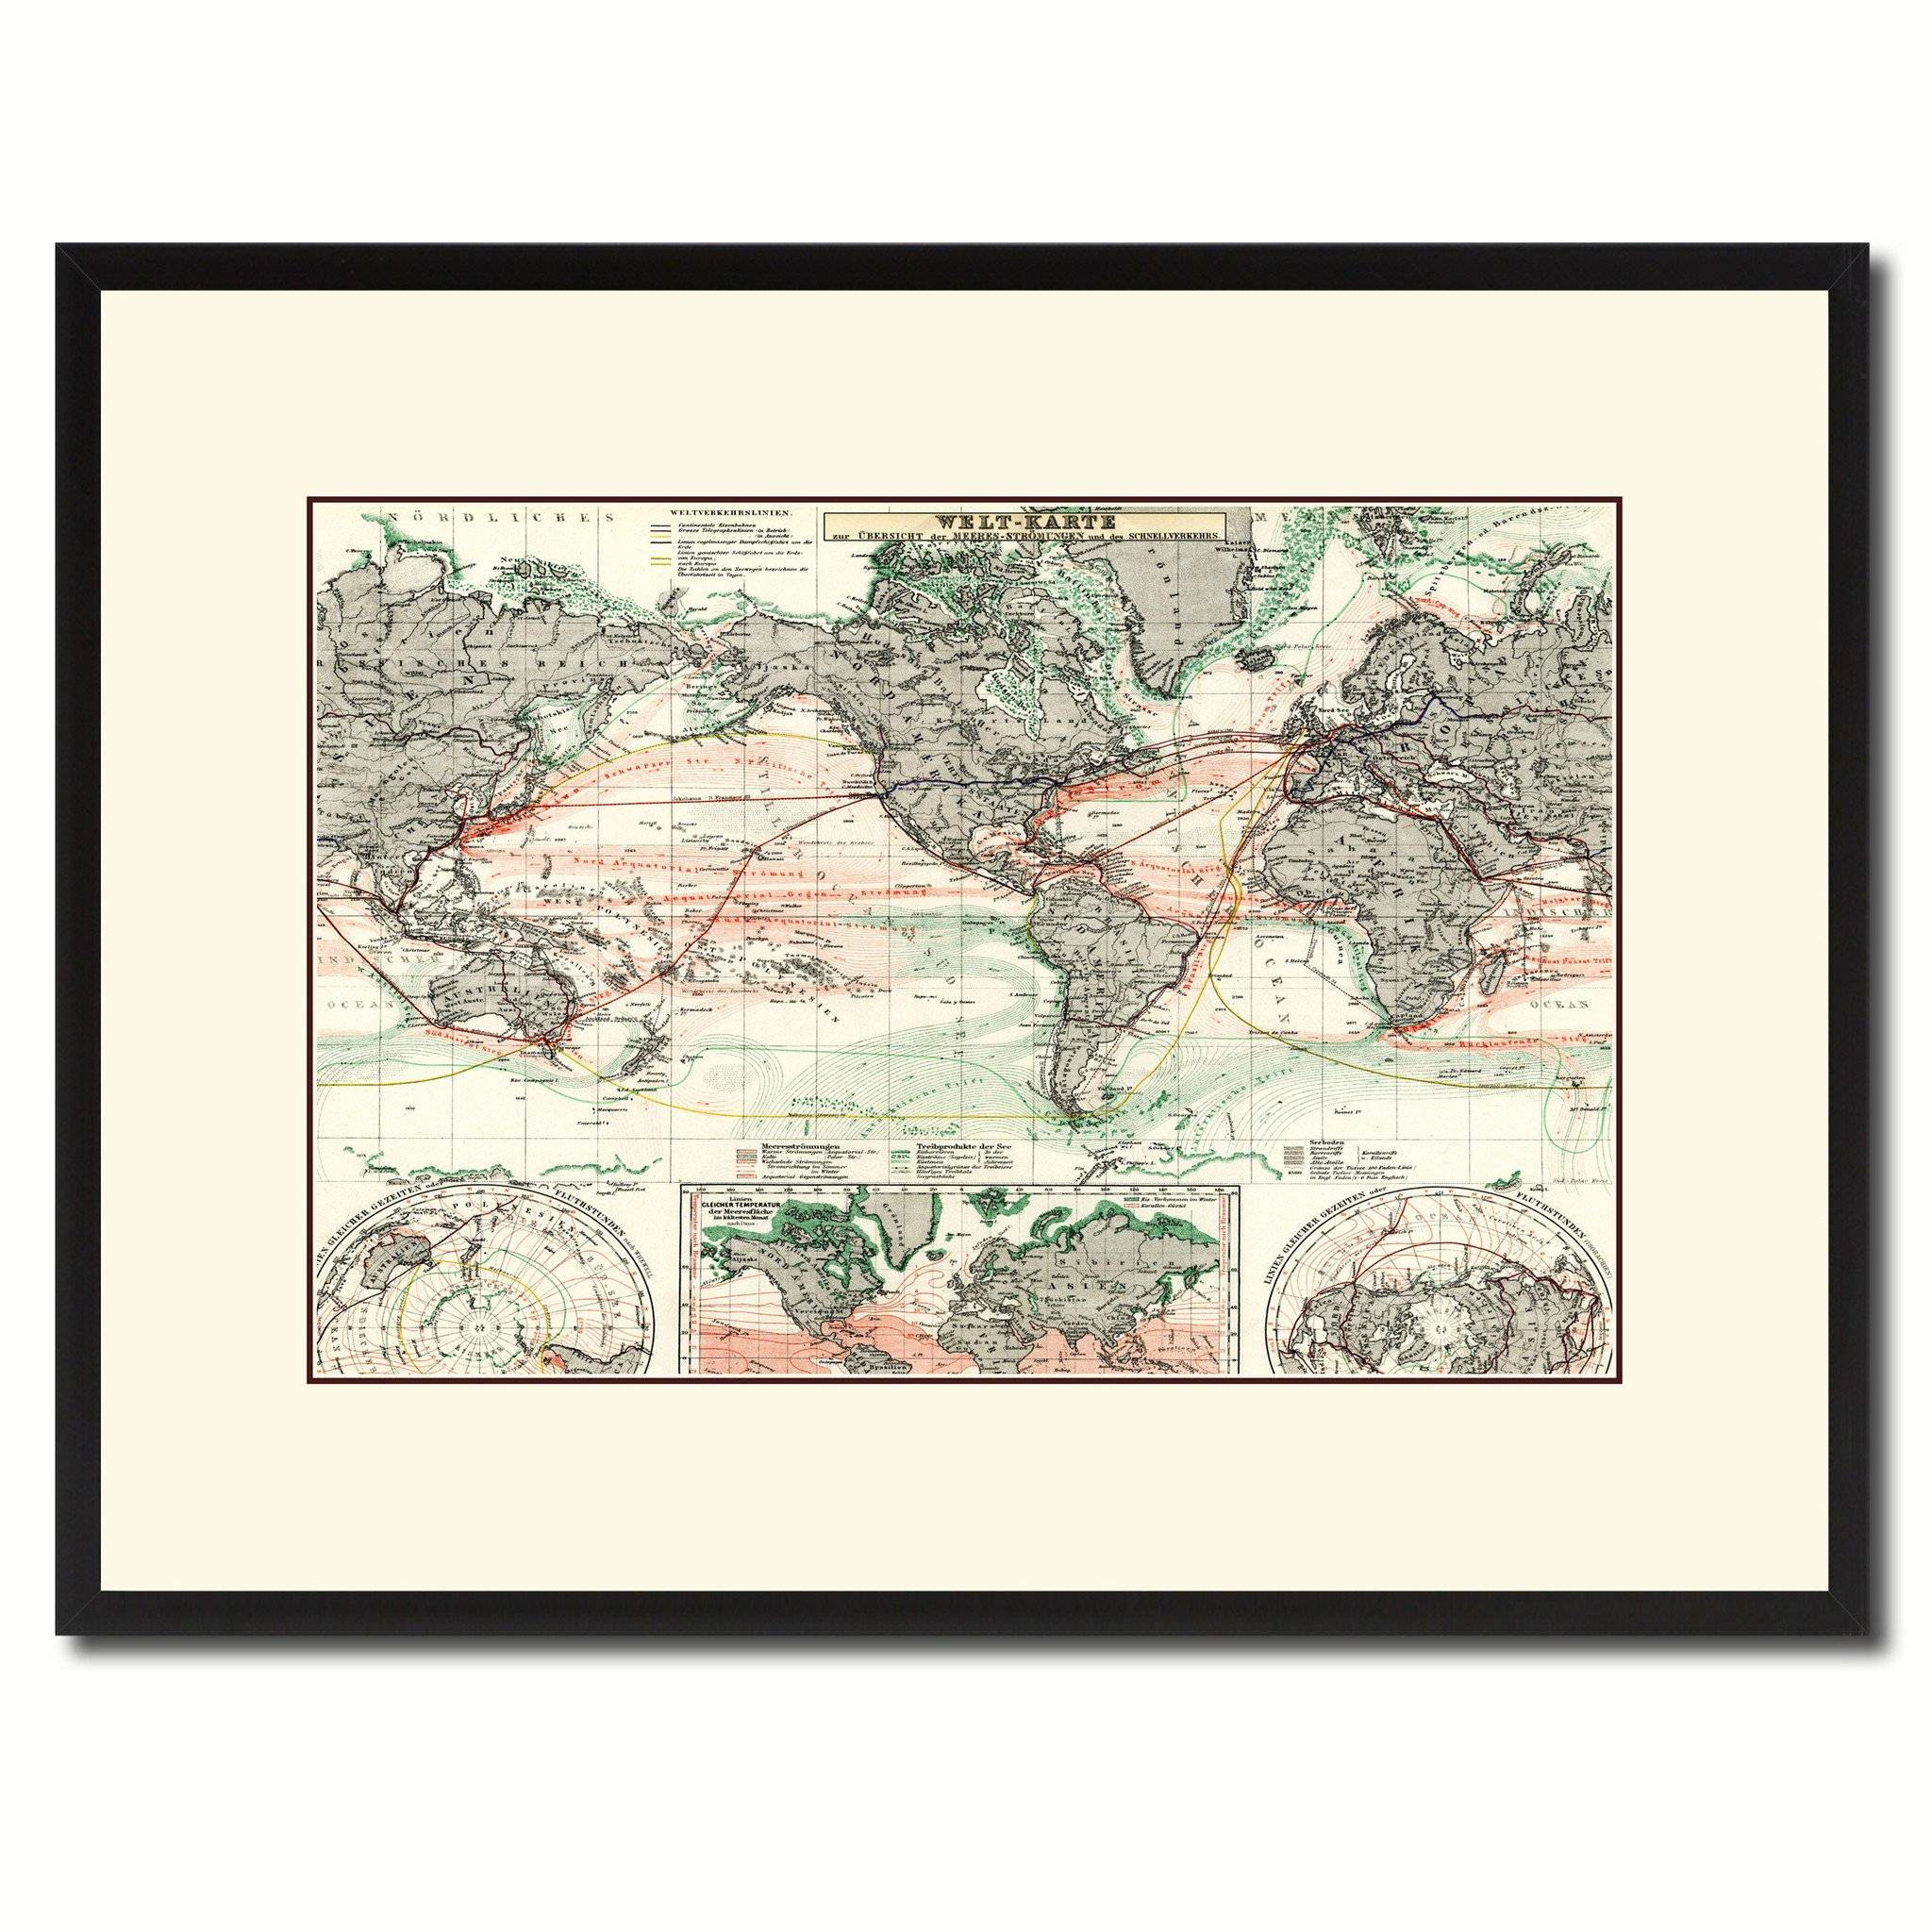 World Ocean Currents Vintage Antique Map Wall Art Home Decor Gift With Most Recent Map Wall Art (View 25 of 25)